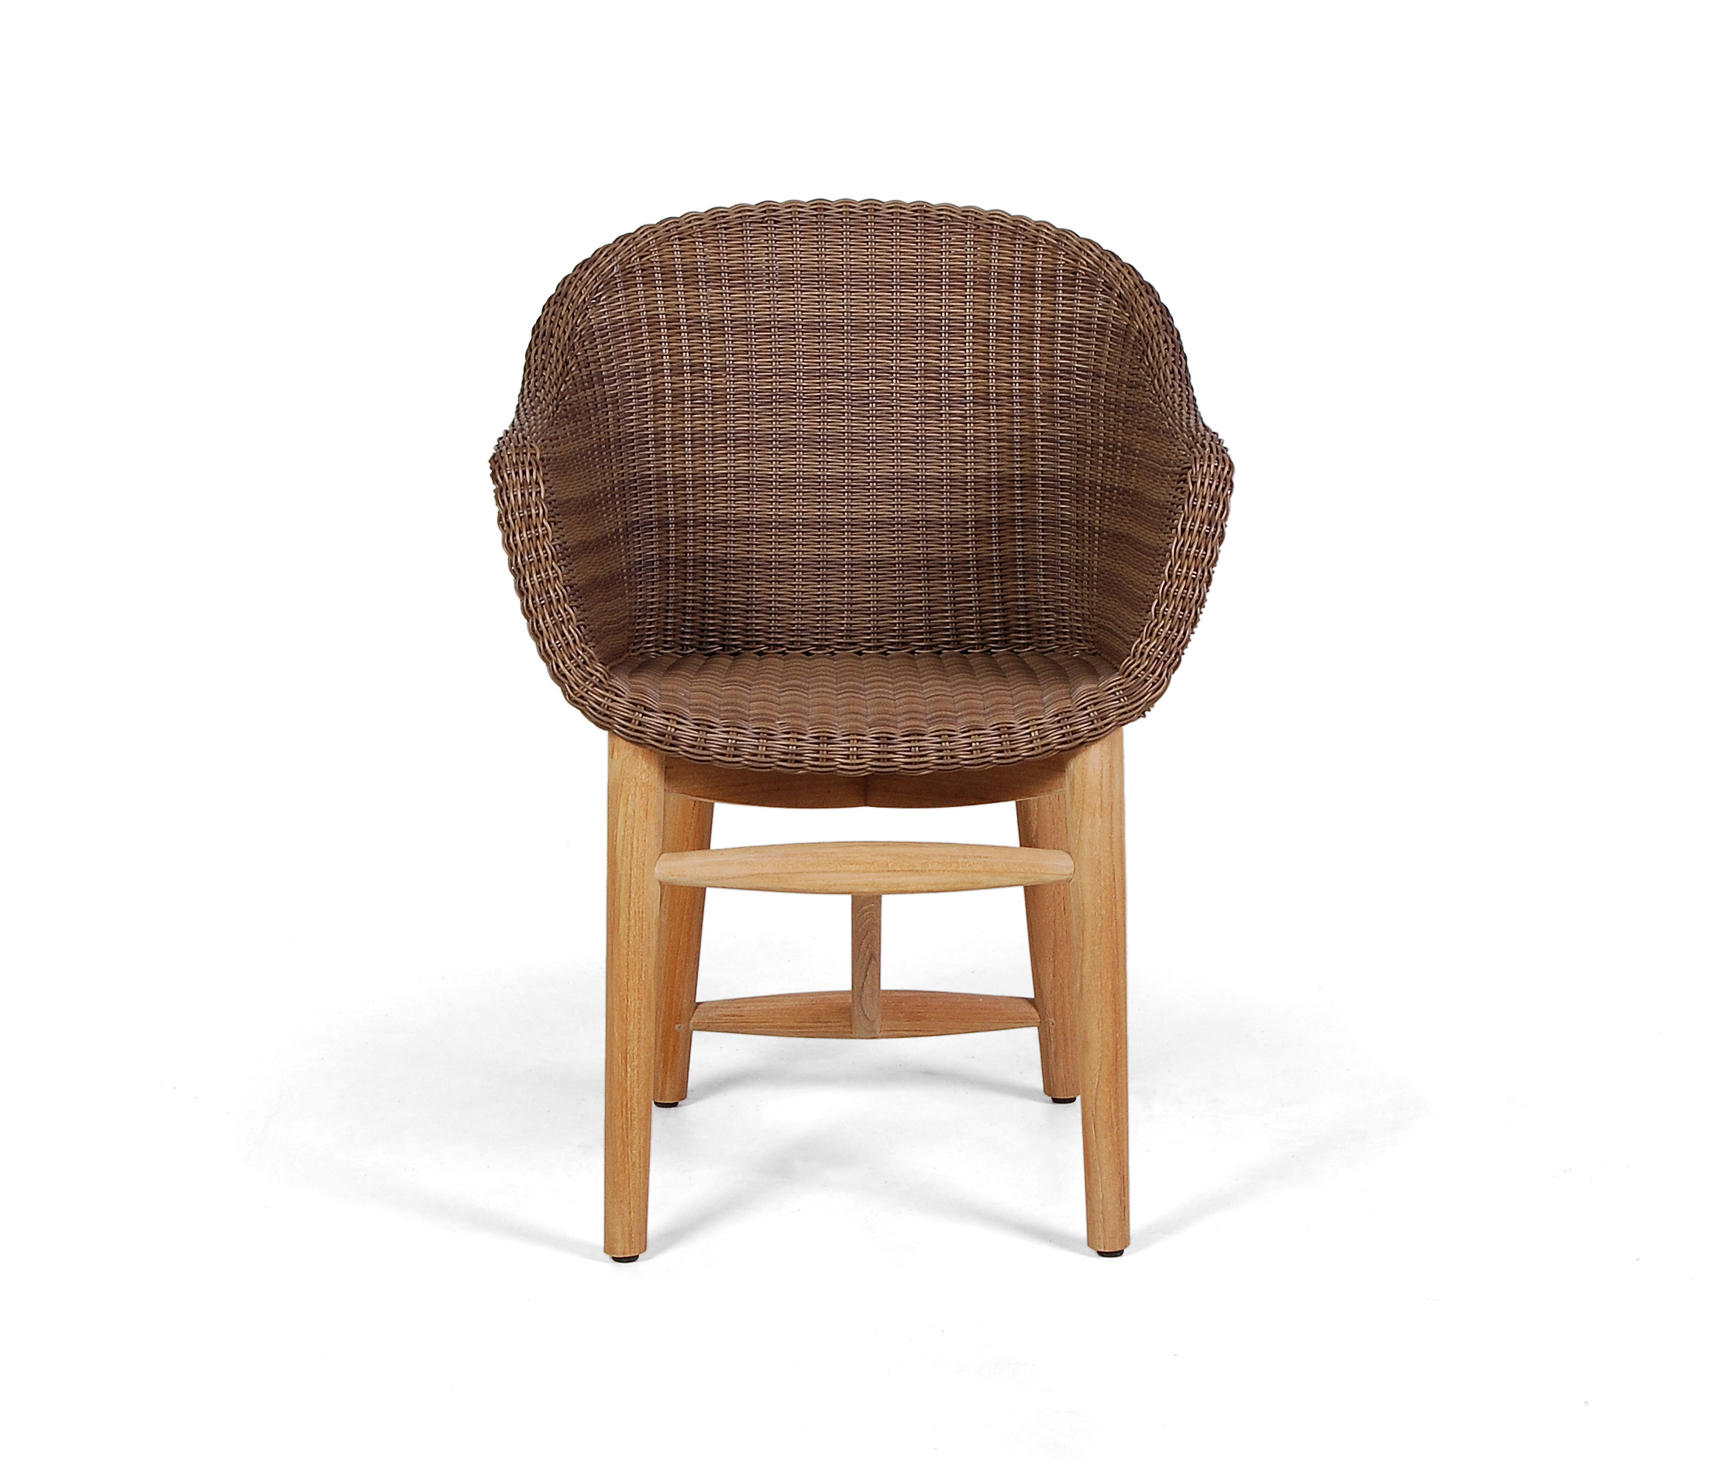 VERA ARMCHAIR - Garden chairs from Wintons Teak | Architonic